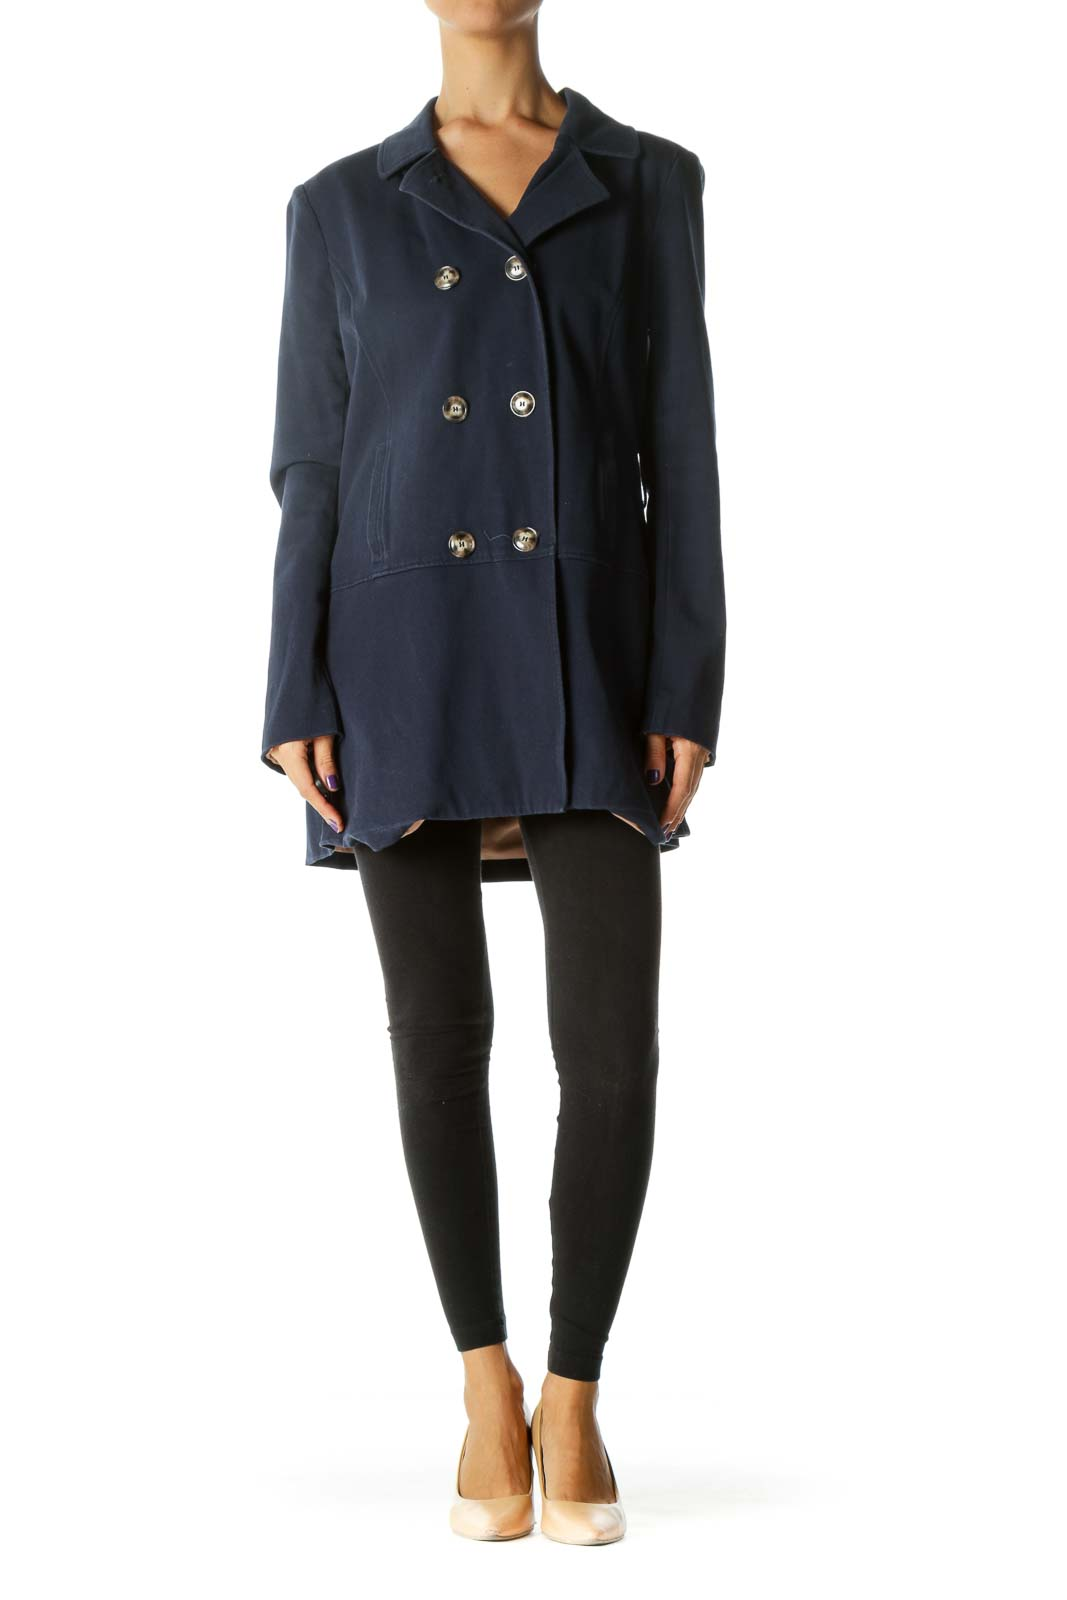 Navy Blue Double-Breasted Long Sleeve Coat (Missing Belt)